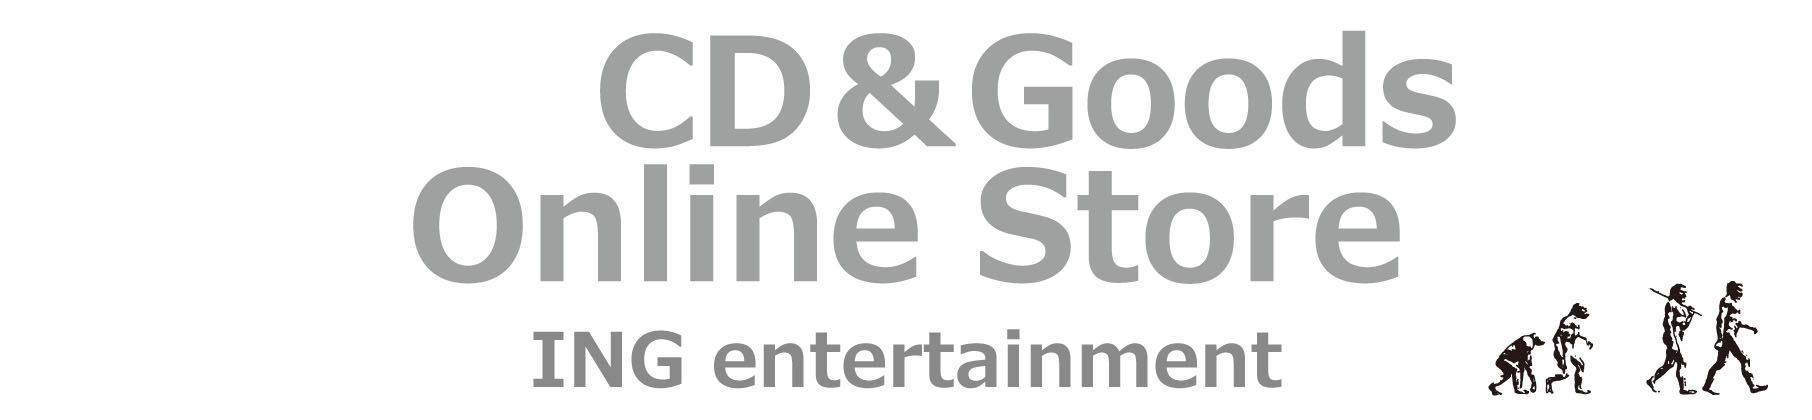 ING entertainment CD&GOODS | Online Store